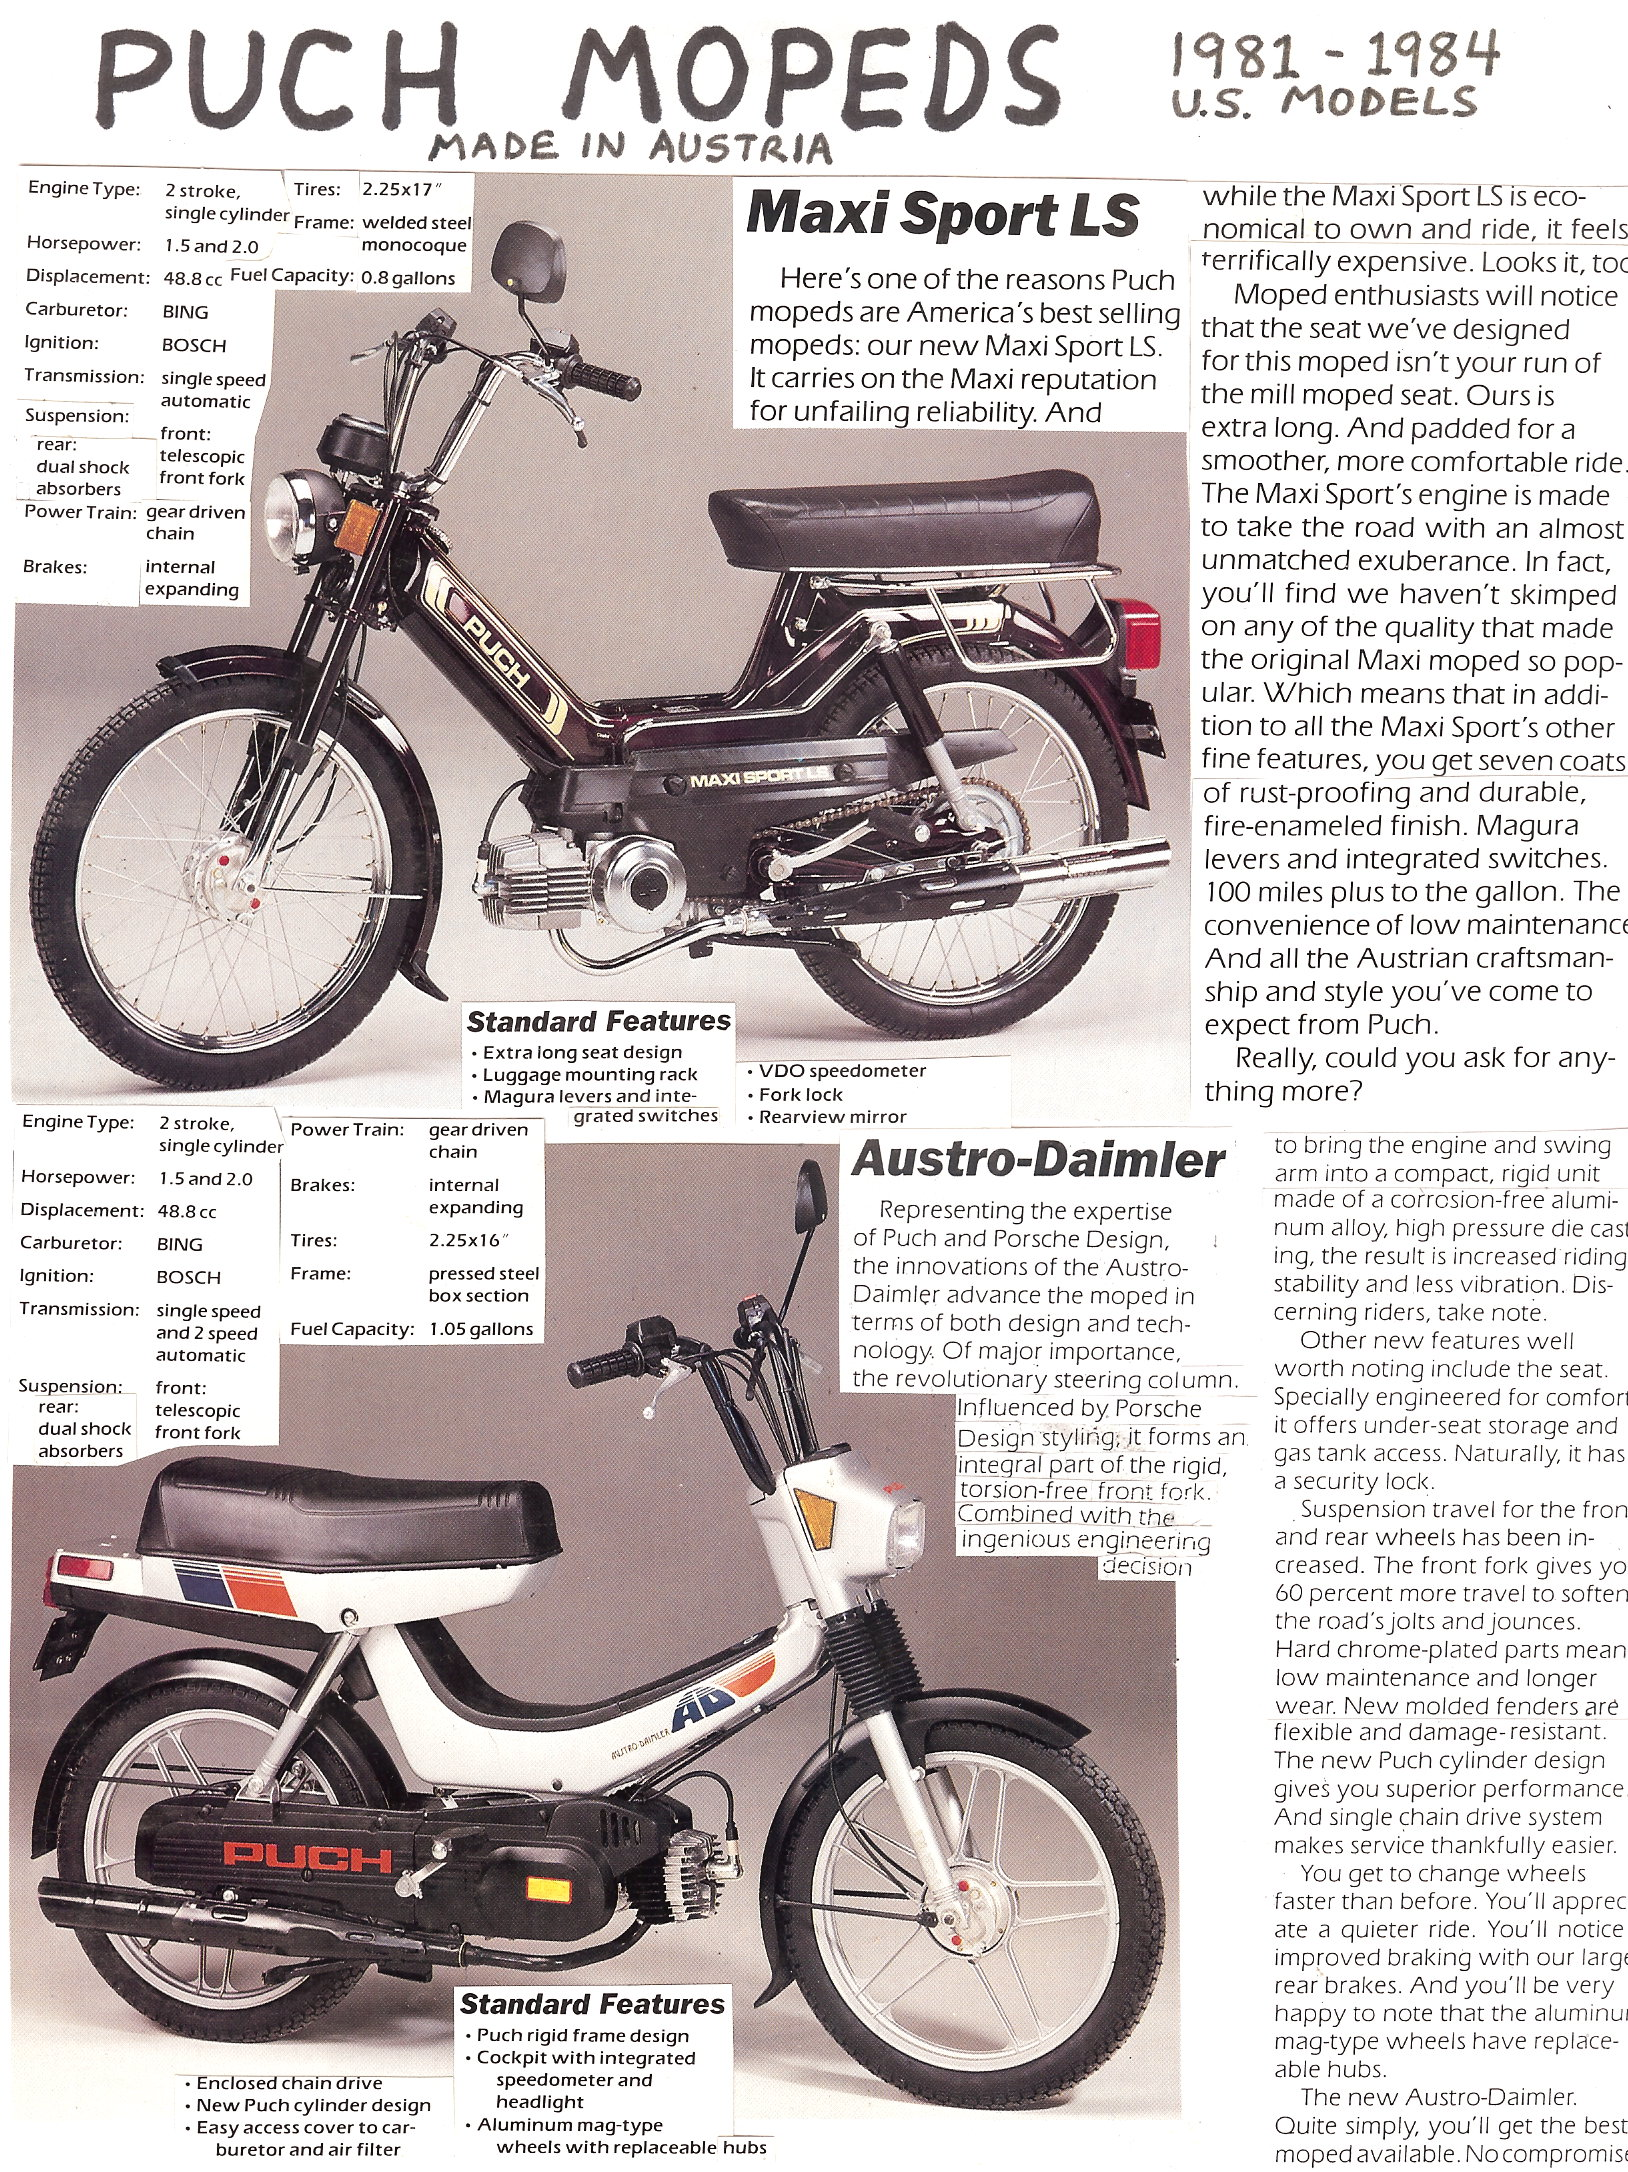 puch maxi wiring diagram newport free engine image for how to wire a 3 phase motor 1977 moped forum elsavadorla